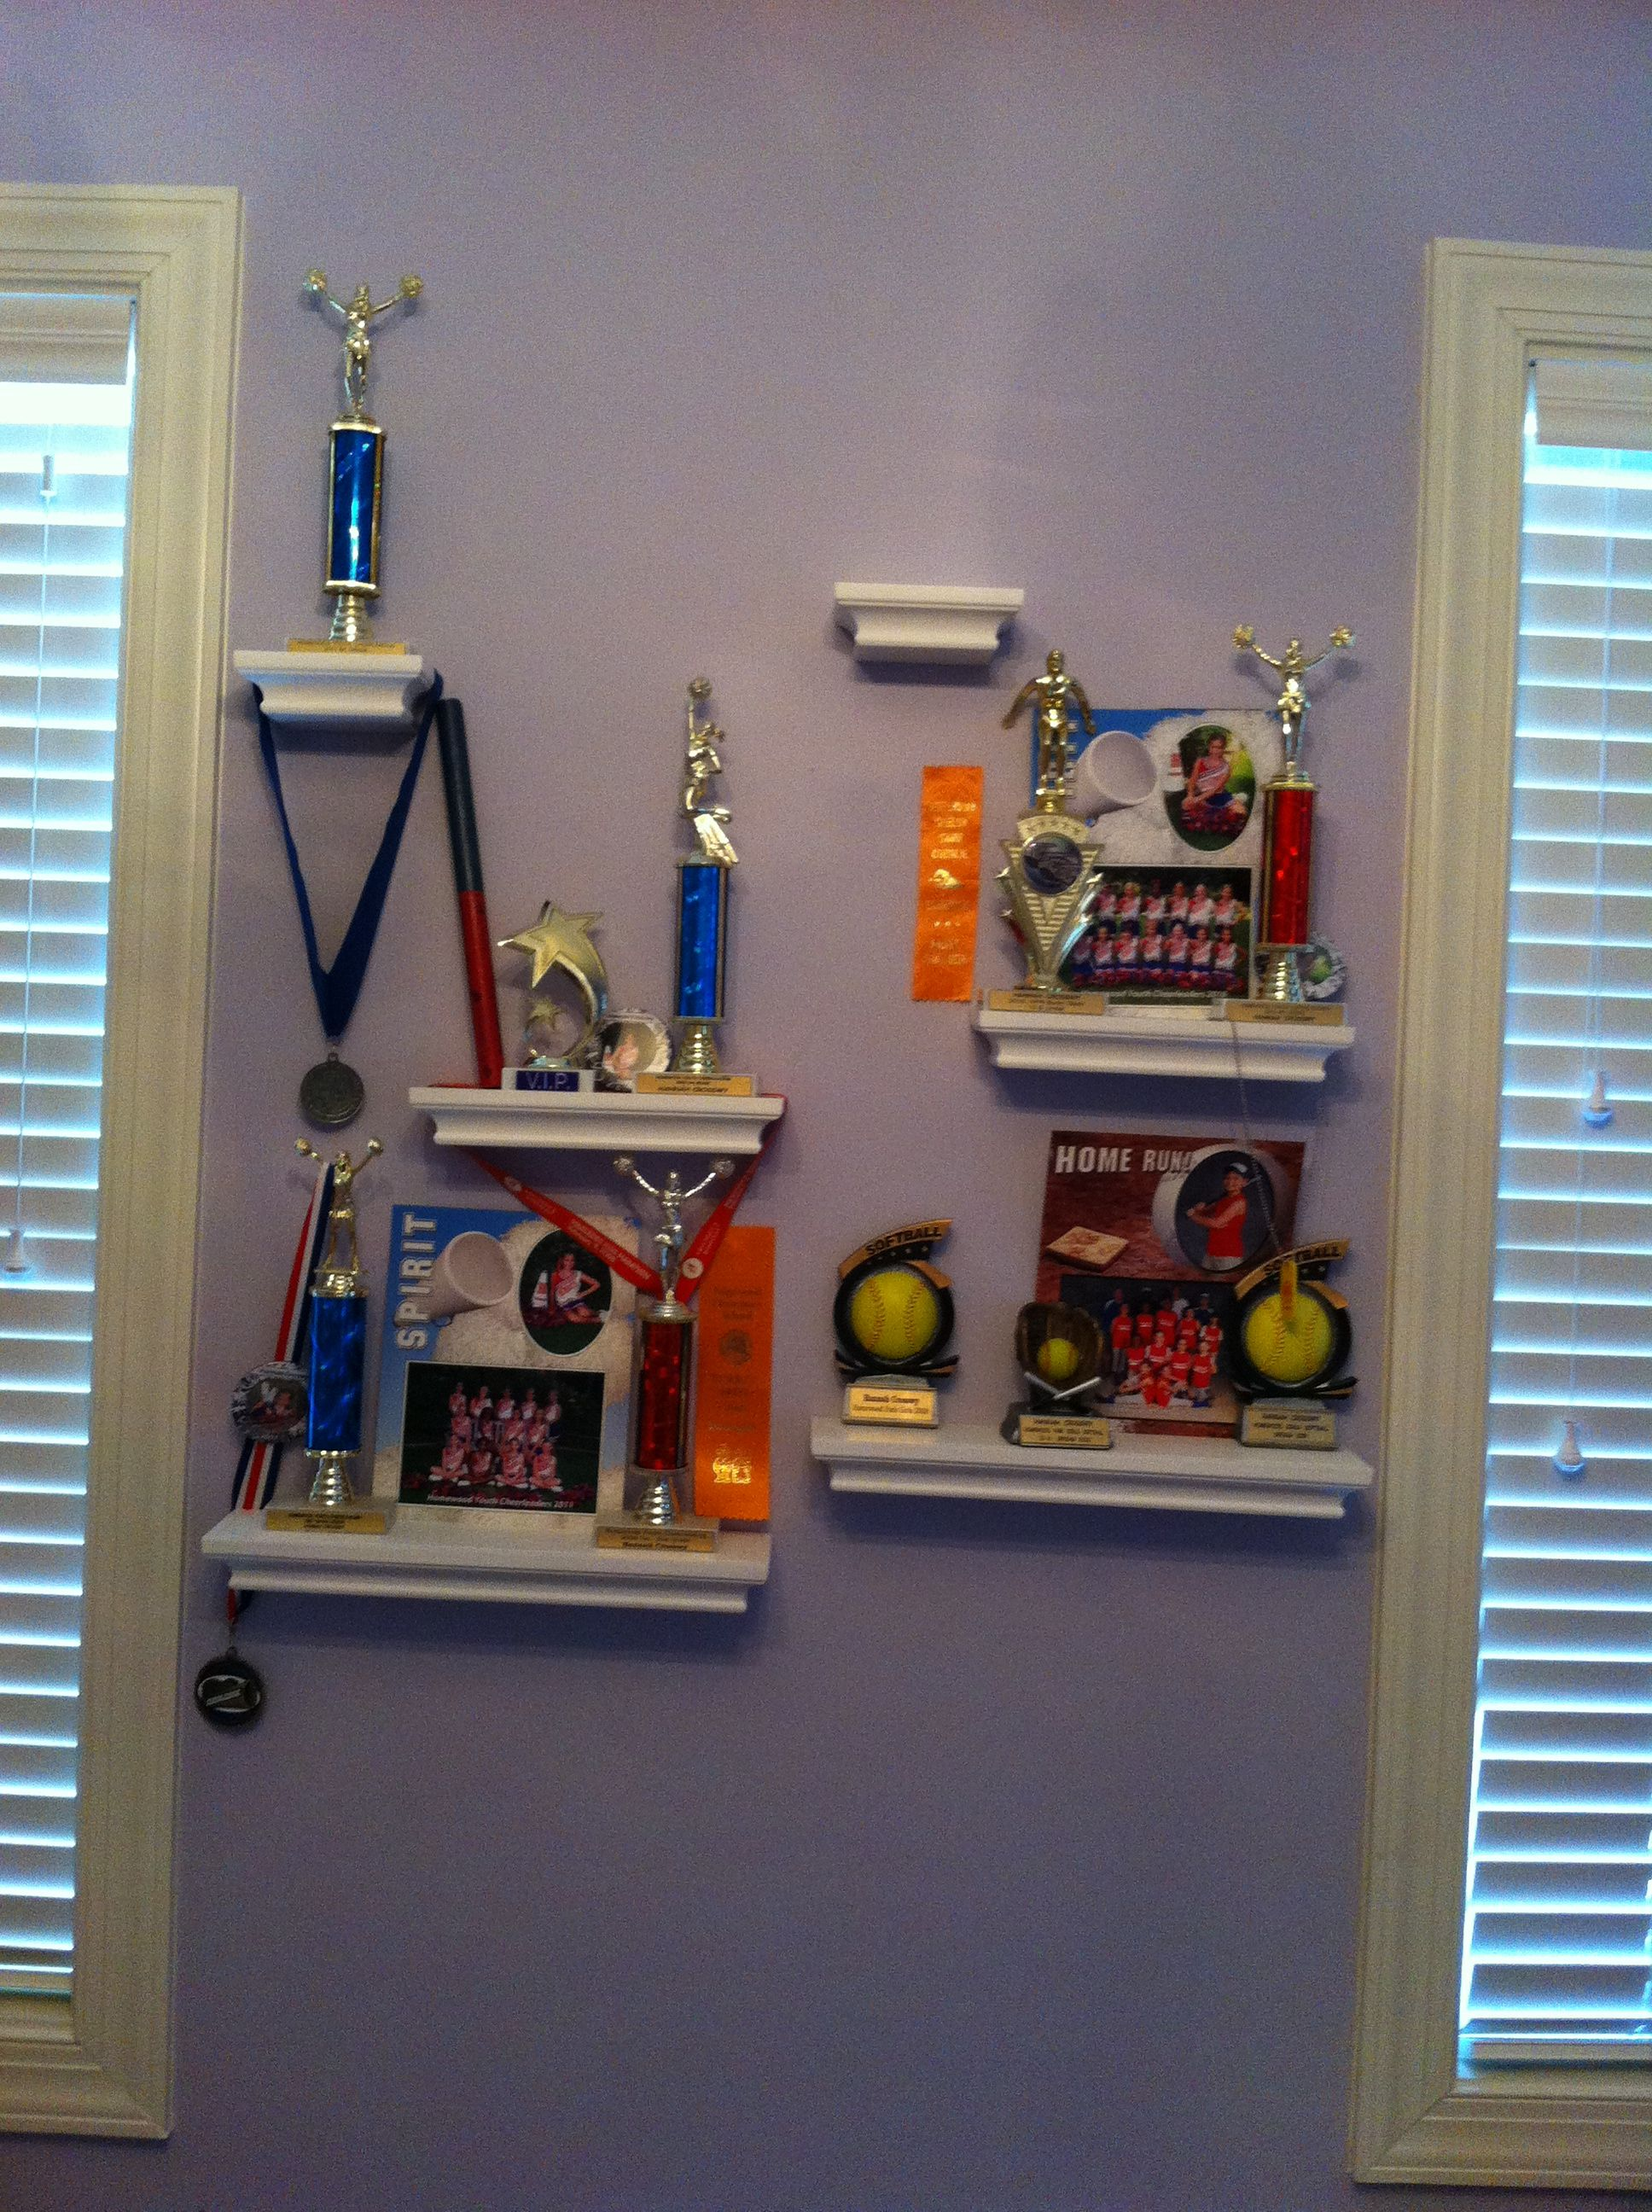 3 way displays 2007 chevy silverado radio wiring harness diagram great to display trophies and medals ideas pinterest